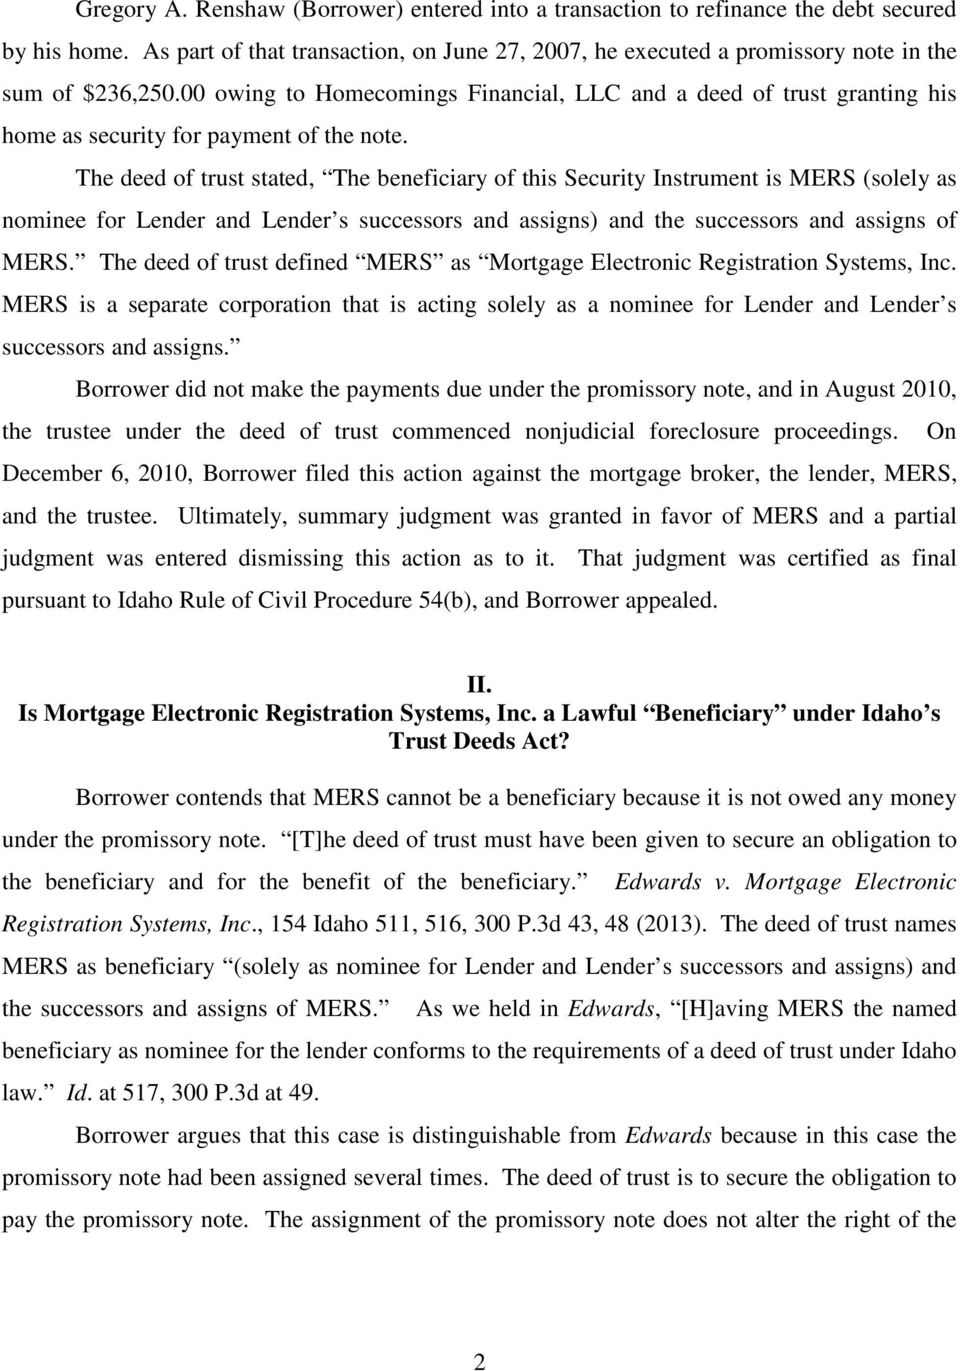 The deed of trust stated, The beneficiary of this Security Instrument is MERS (solely as nominee for Lender and Lender s successors and assigns and the successors and assigns of MERS.